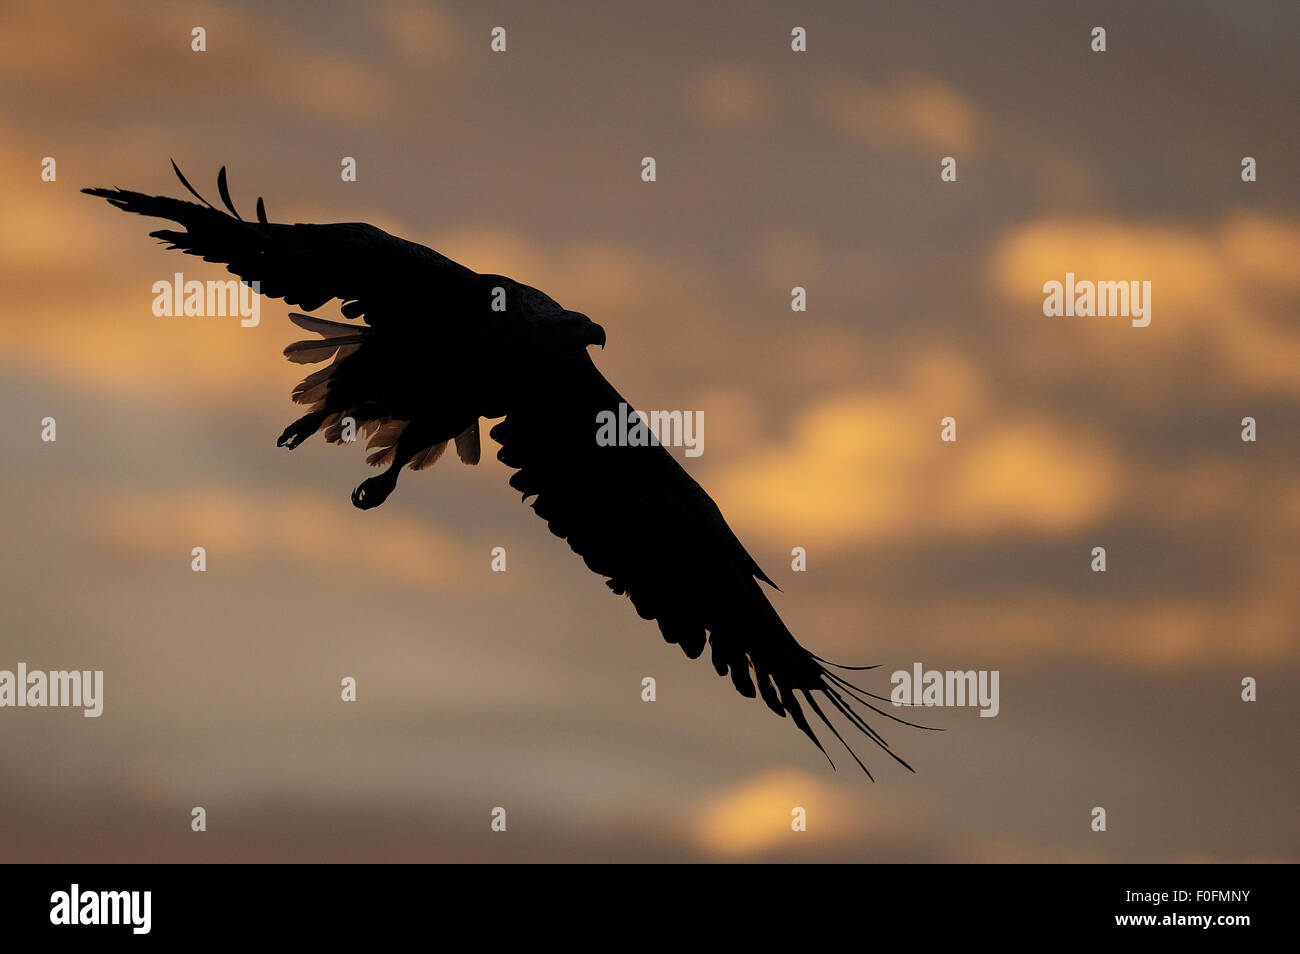 White tailed sea eagle (Haliaeetus albicilla) in flight, silhouetted, Flatanger, Nord Trøndelag, Norway, August 2008 Stock Photo